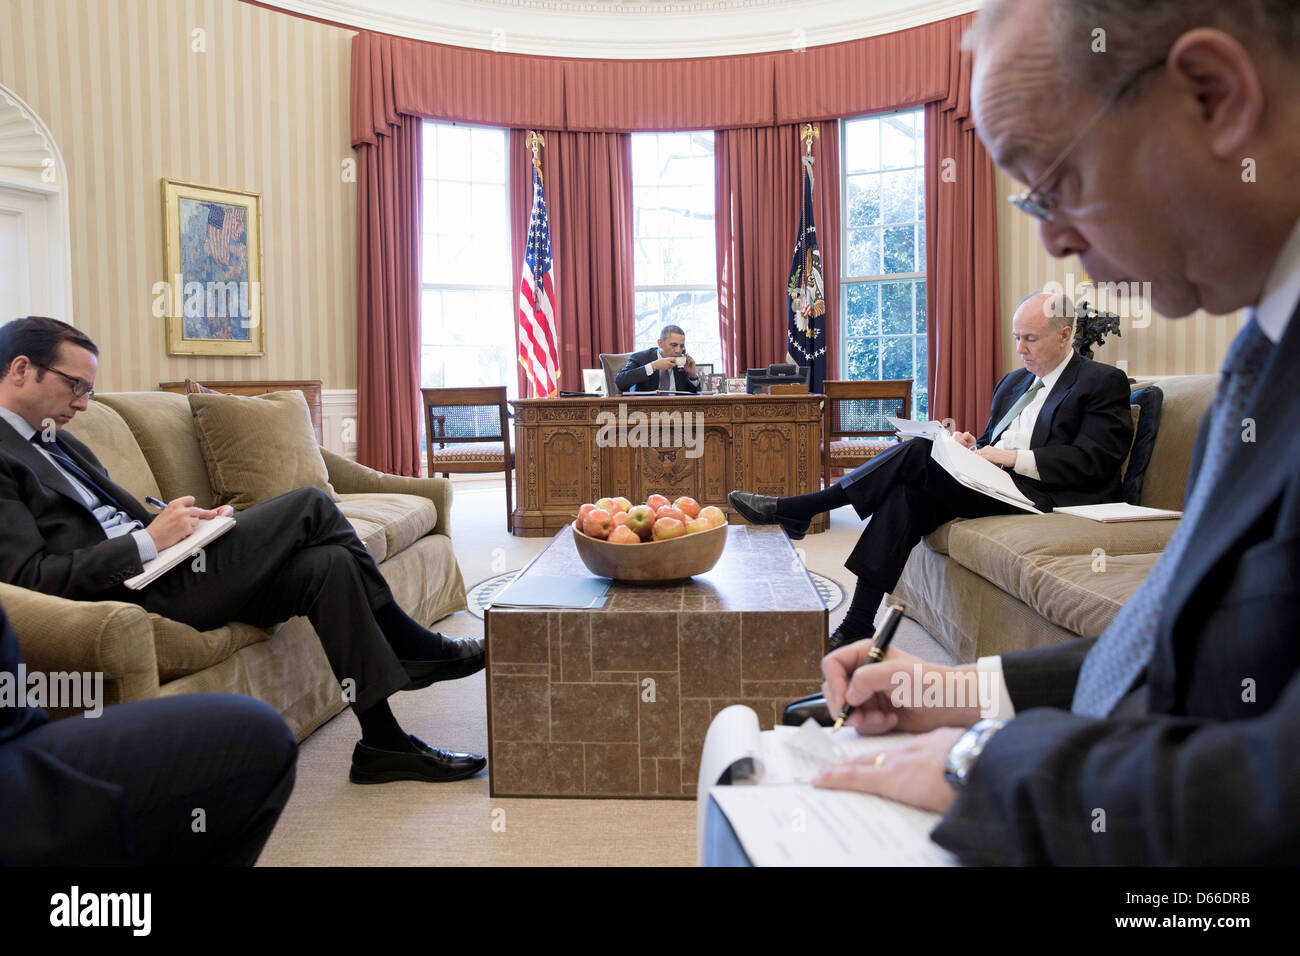 Advisors take notes as US President Barack Obama has a foreign leader phone call in the Oval Office March 14, 2013 - Stock Image